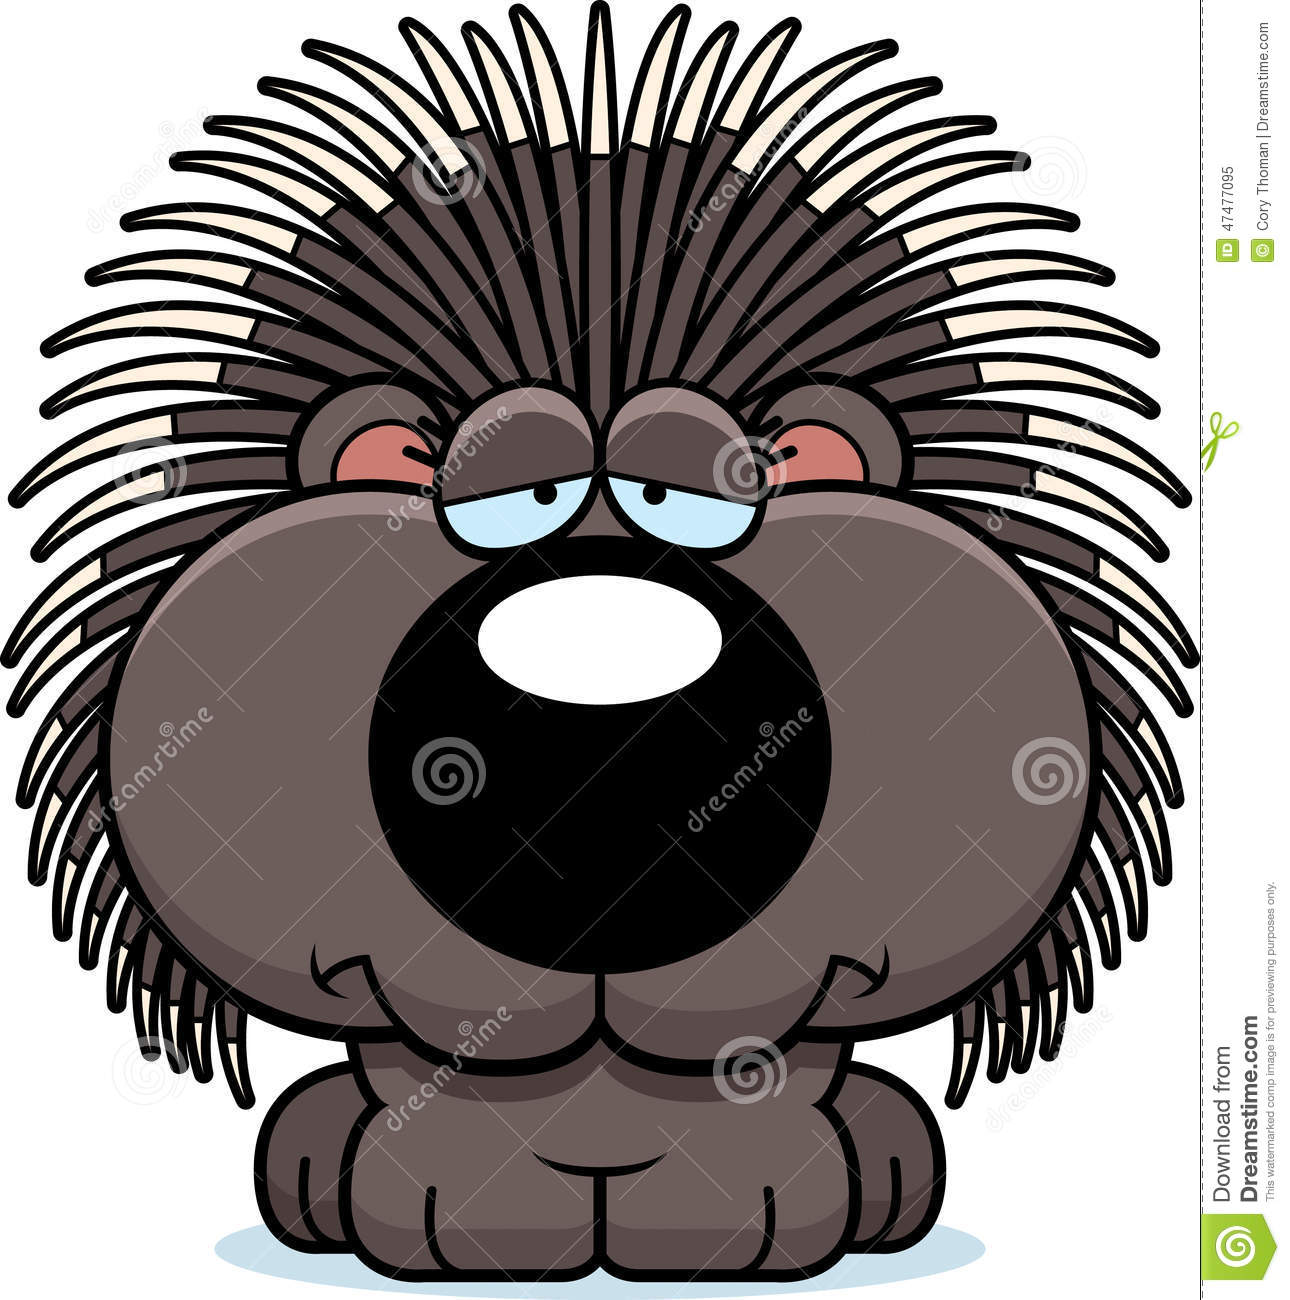 New World Porcupine clipart #10, Download drawings